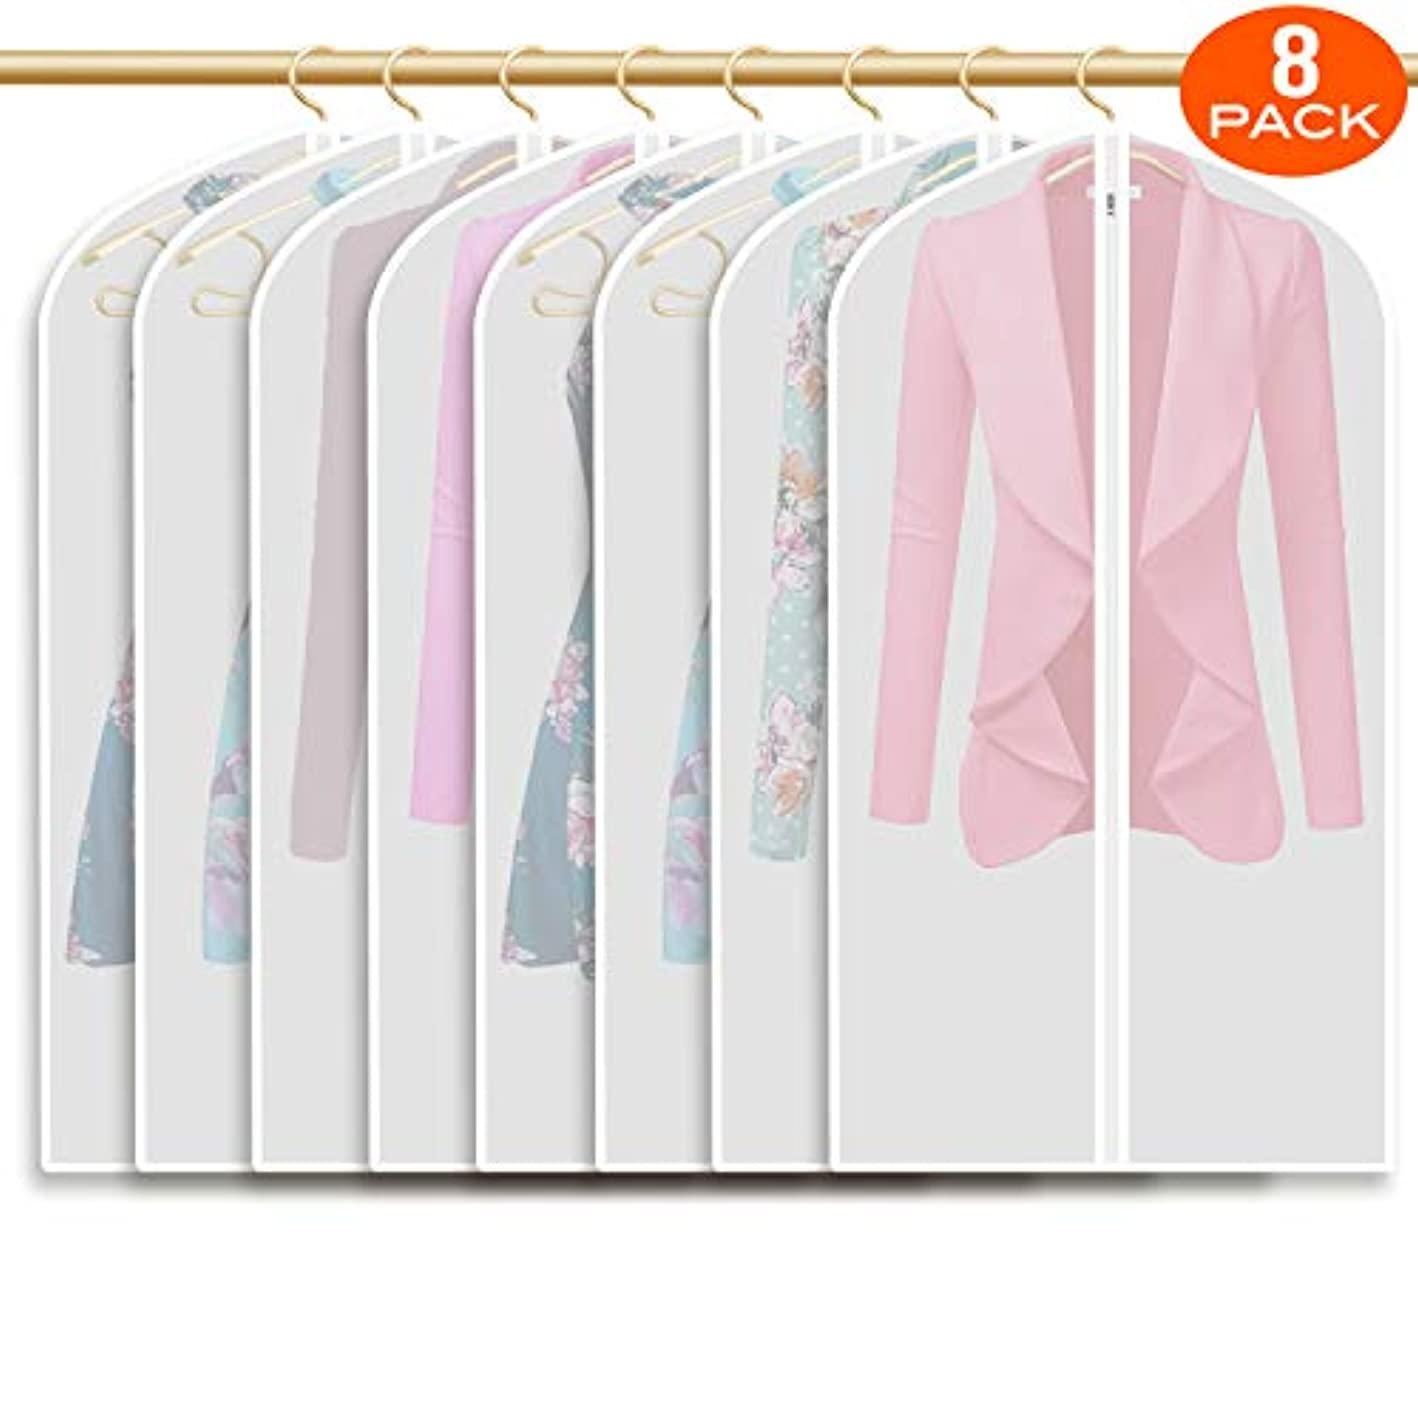 Refrze Moth Proof Garment Bags,Garment Cover,8 Pack Clear Garment Bags,Hanging Garment Bag, Dress Dance Garment Bags for Storage or for Travel,Breathable Dust and Waterproof Garment Protector Covers